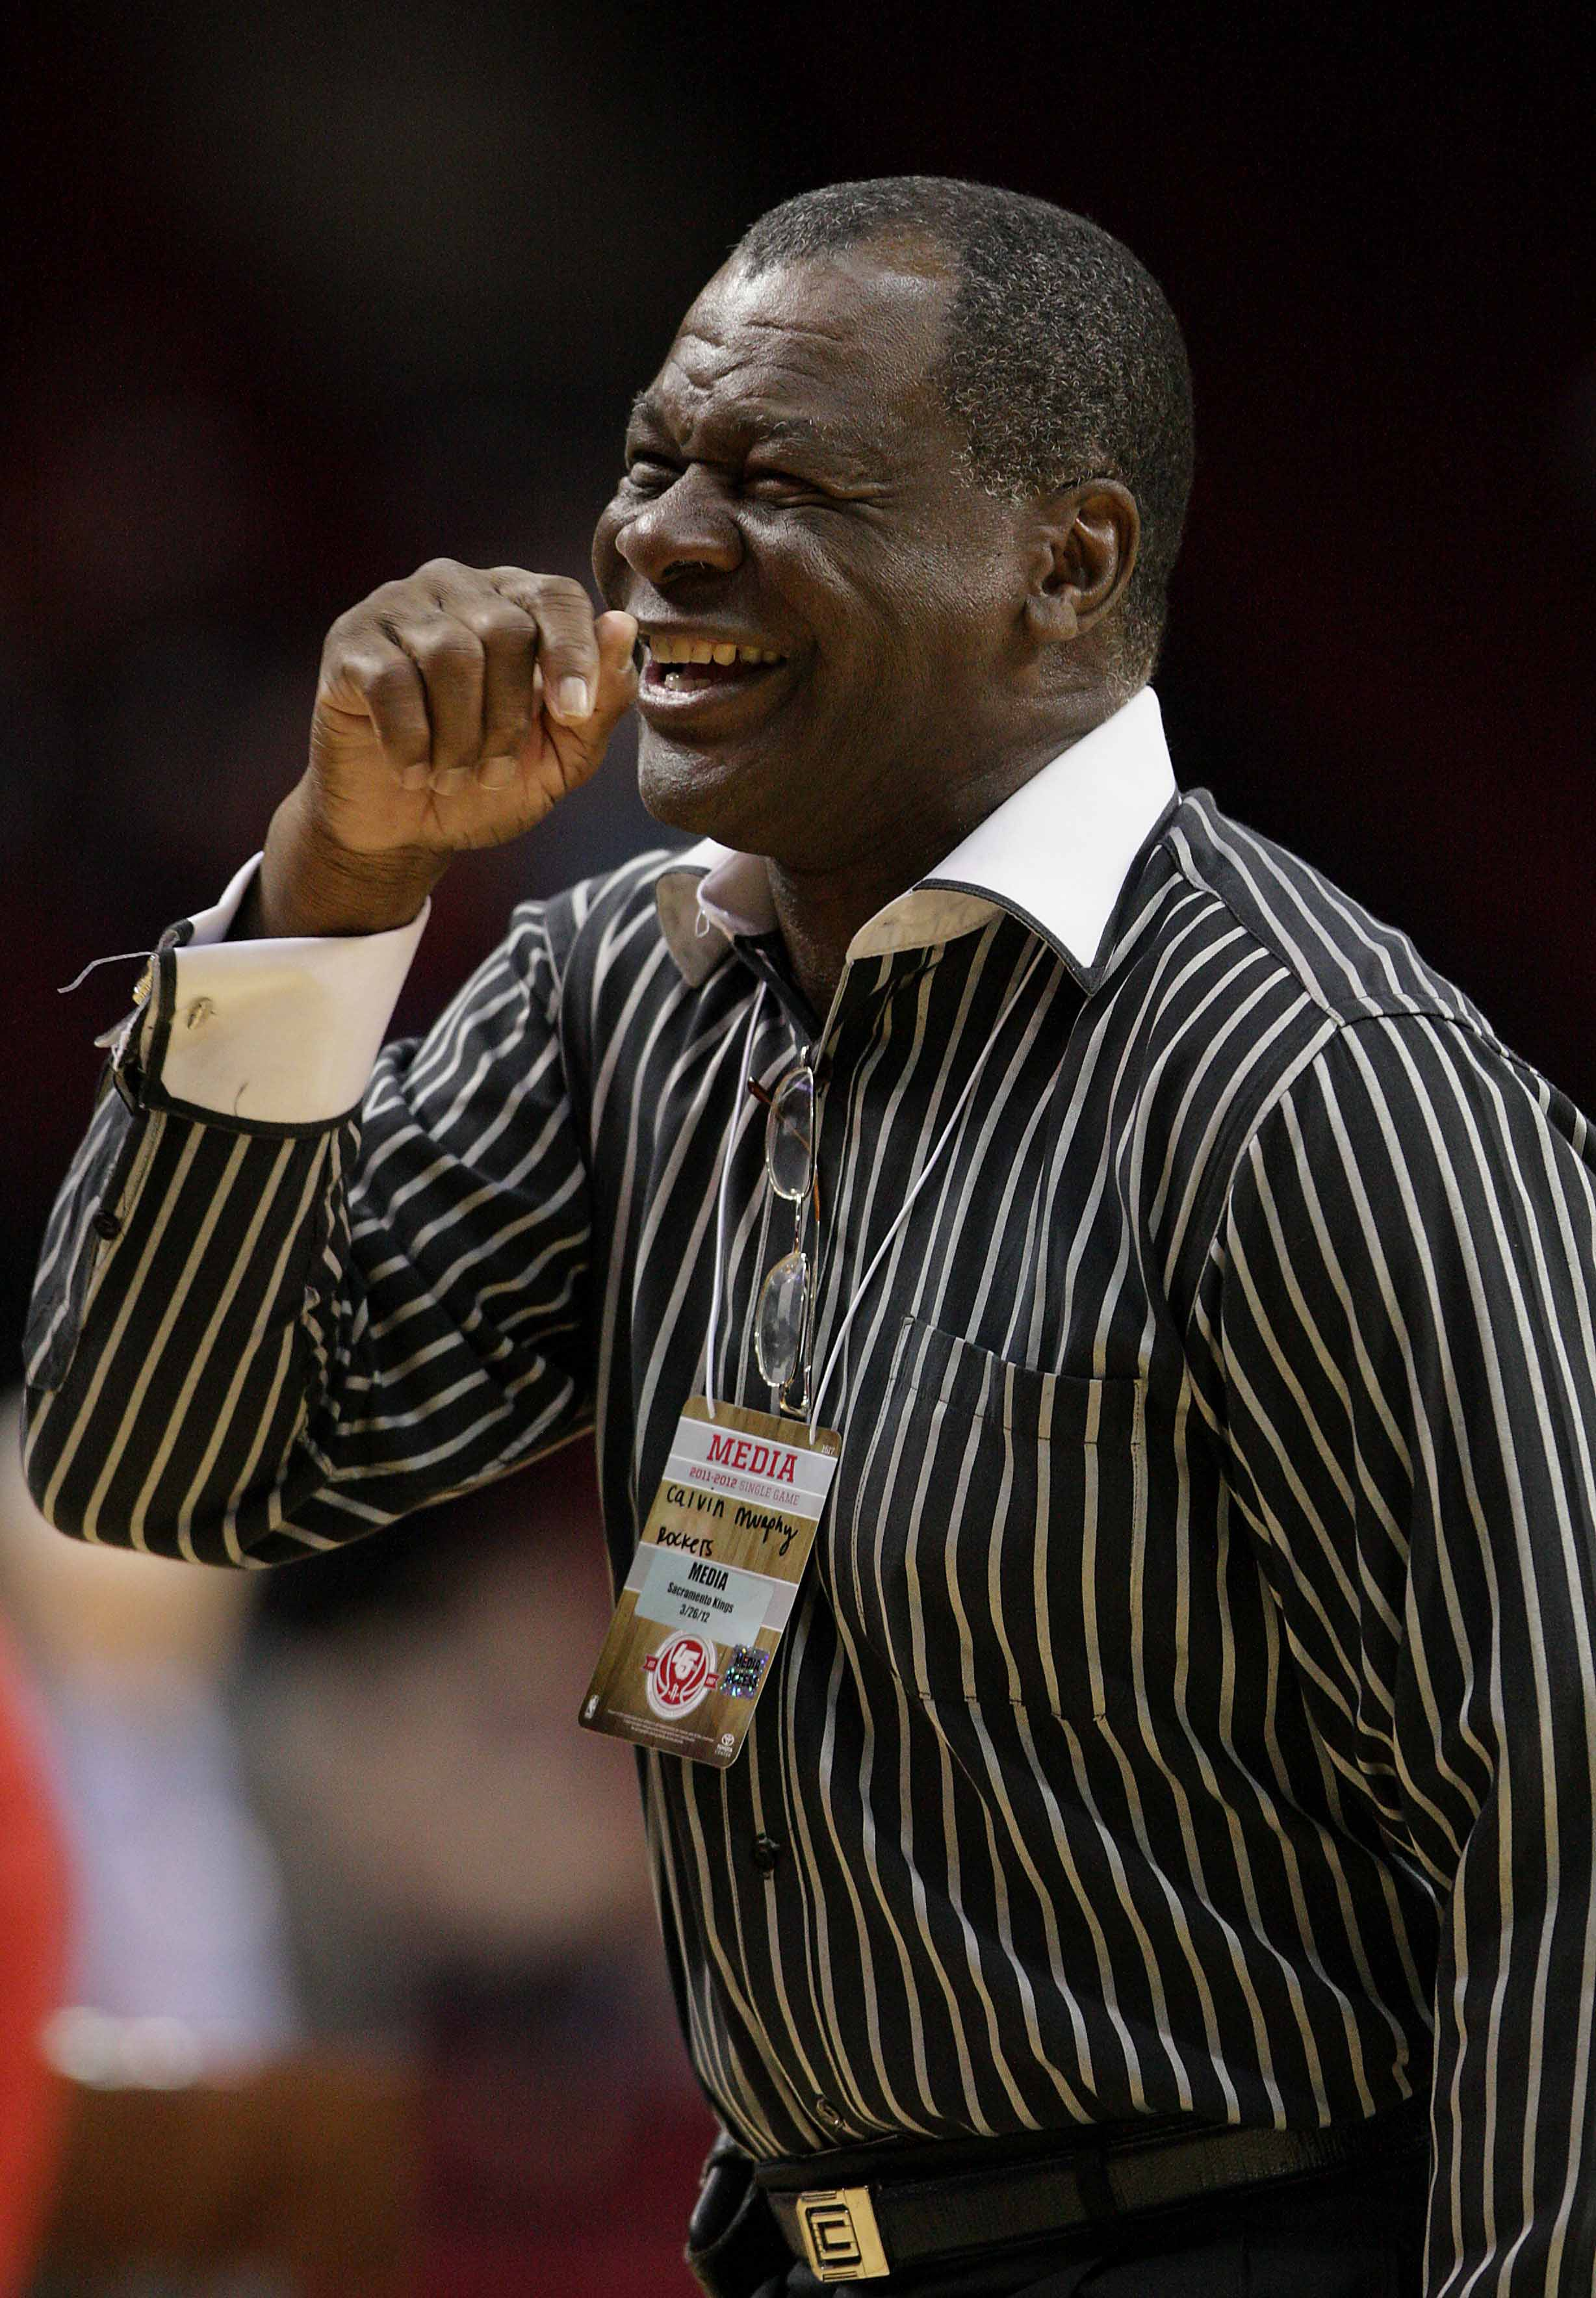 March 26, 2012; Houston, TX, USA; Houston Rocket former player Calvin Murphy laughs before a game against the Sacramento Kings at Toyota Center. Mandatory Credit: Troy Taormina-USA TODAY Sports